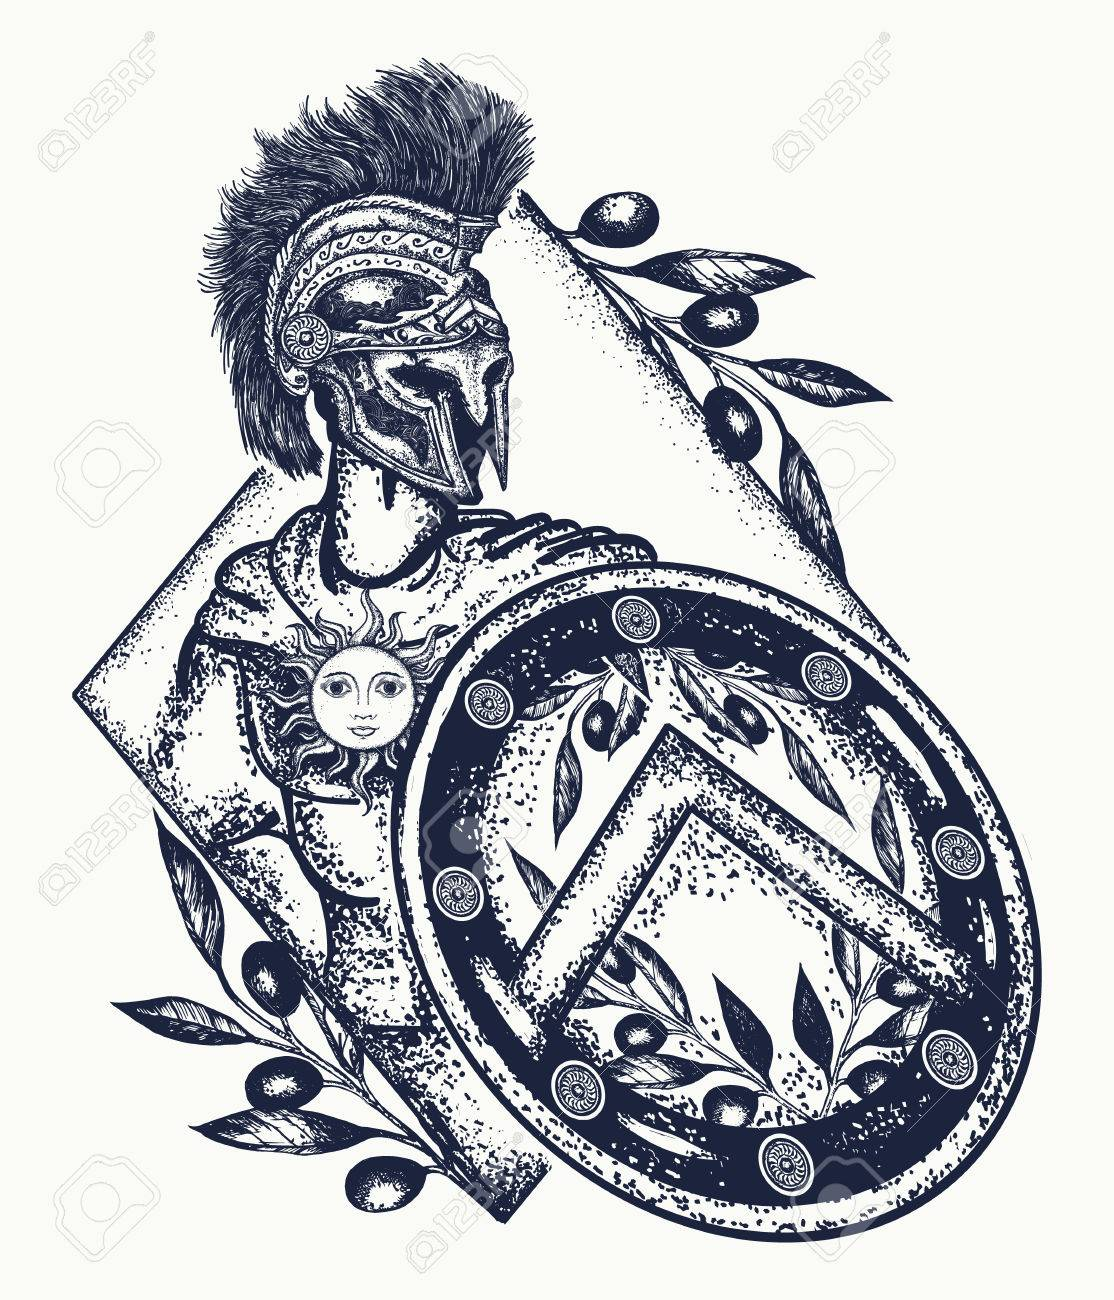 Spartan Warrior Tattoo Art Legionary Of Ancient Rome And Ancient